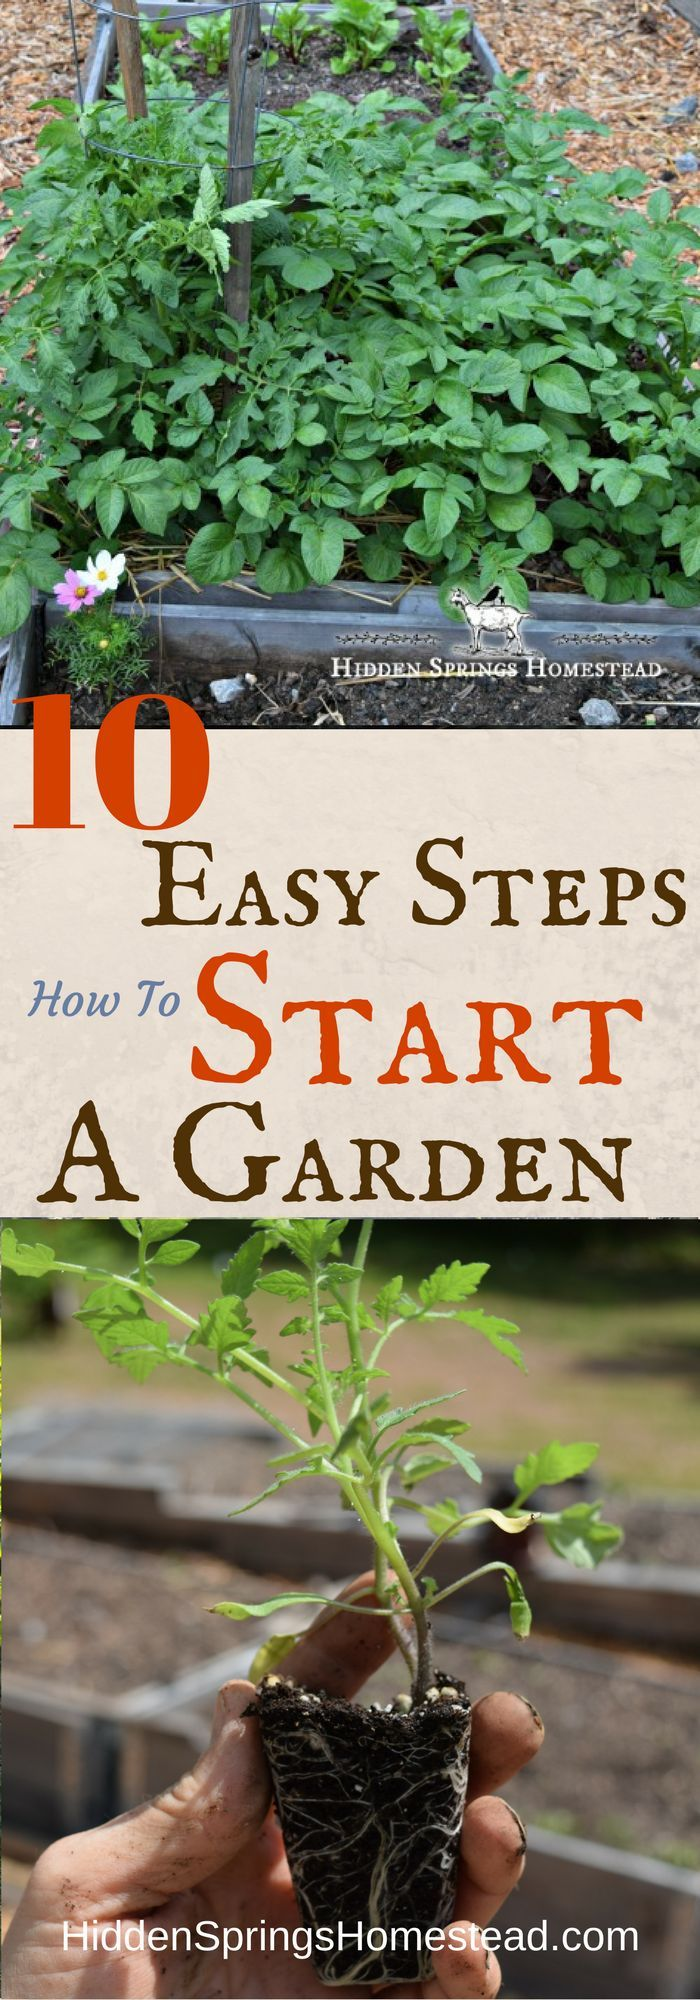 How To Start A Garden   10 Easy Steps | Gardening | Pinterest | Homesteads  And Gardens